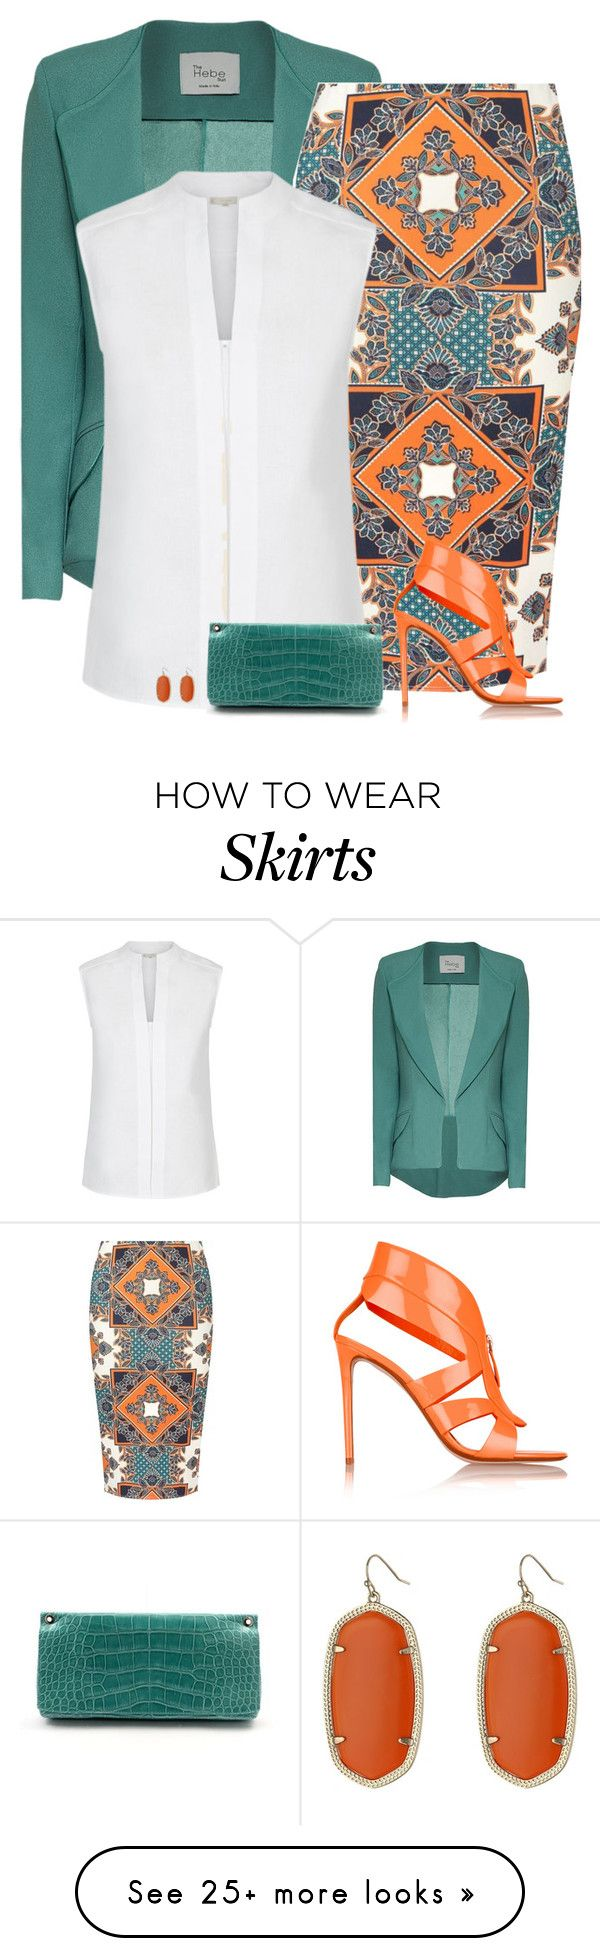 """Tuesday"" Outfit and on Polyvore featuring Dorothy Perkins, Hobbs, Nicholas Kirkwood, Jimmy Choo, Kendra Scott and Original"